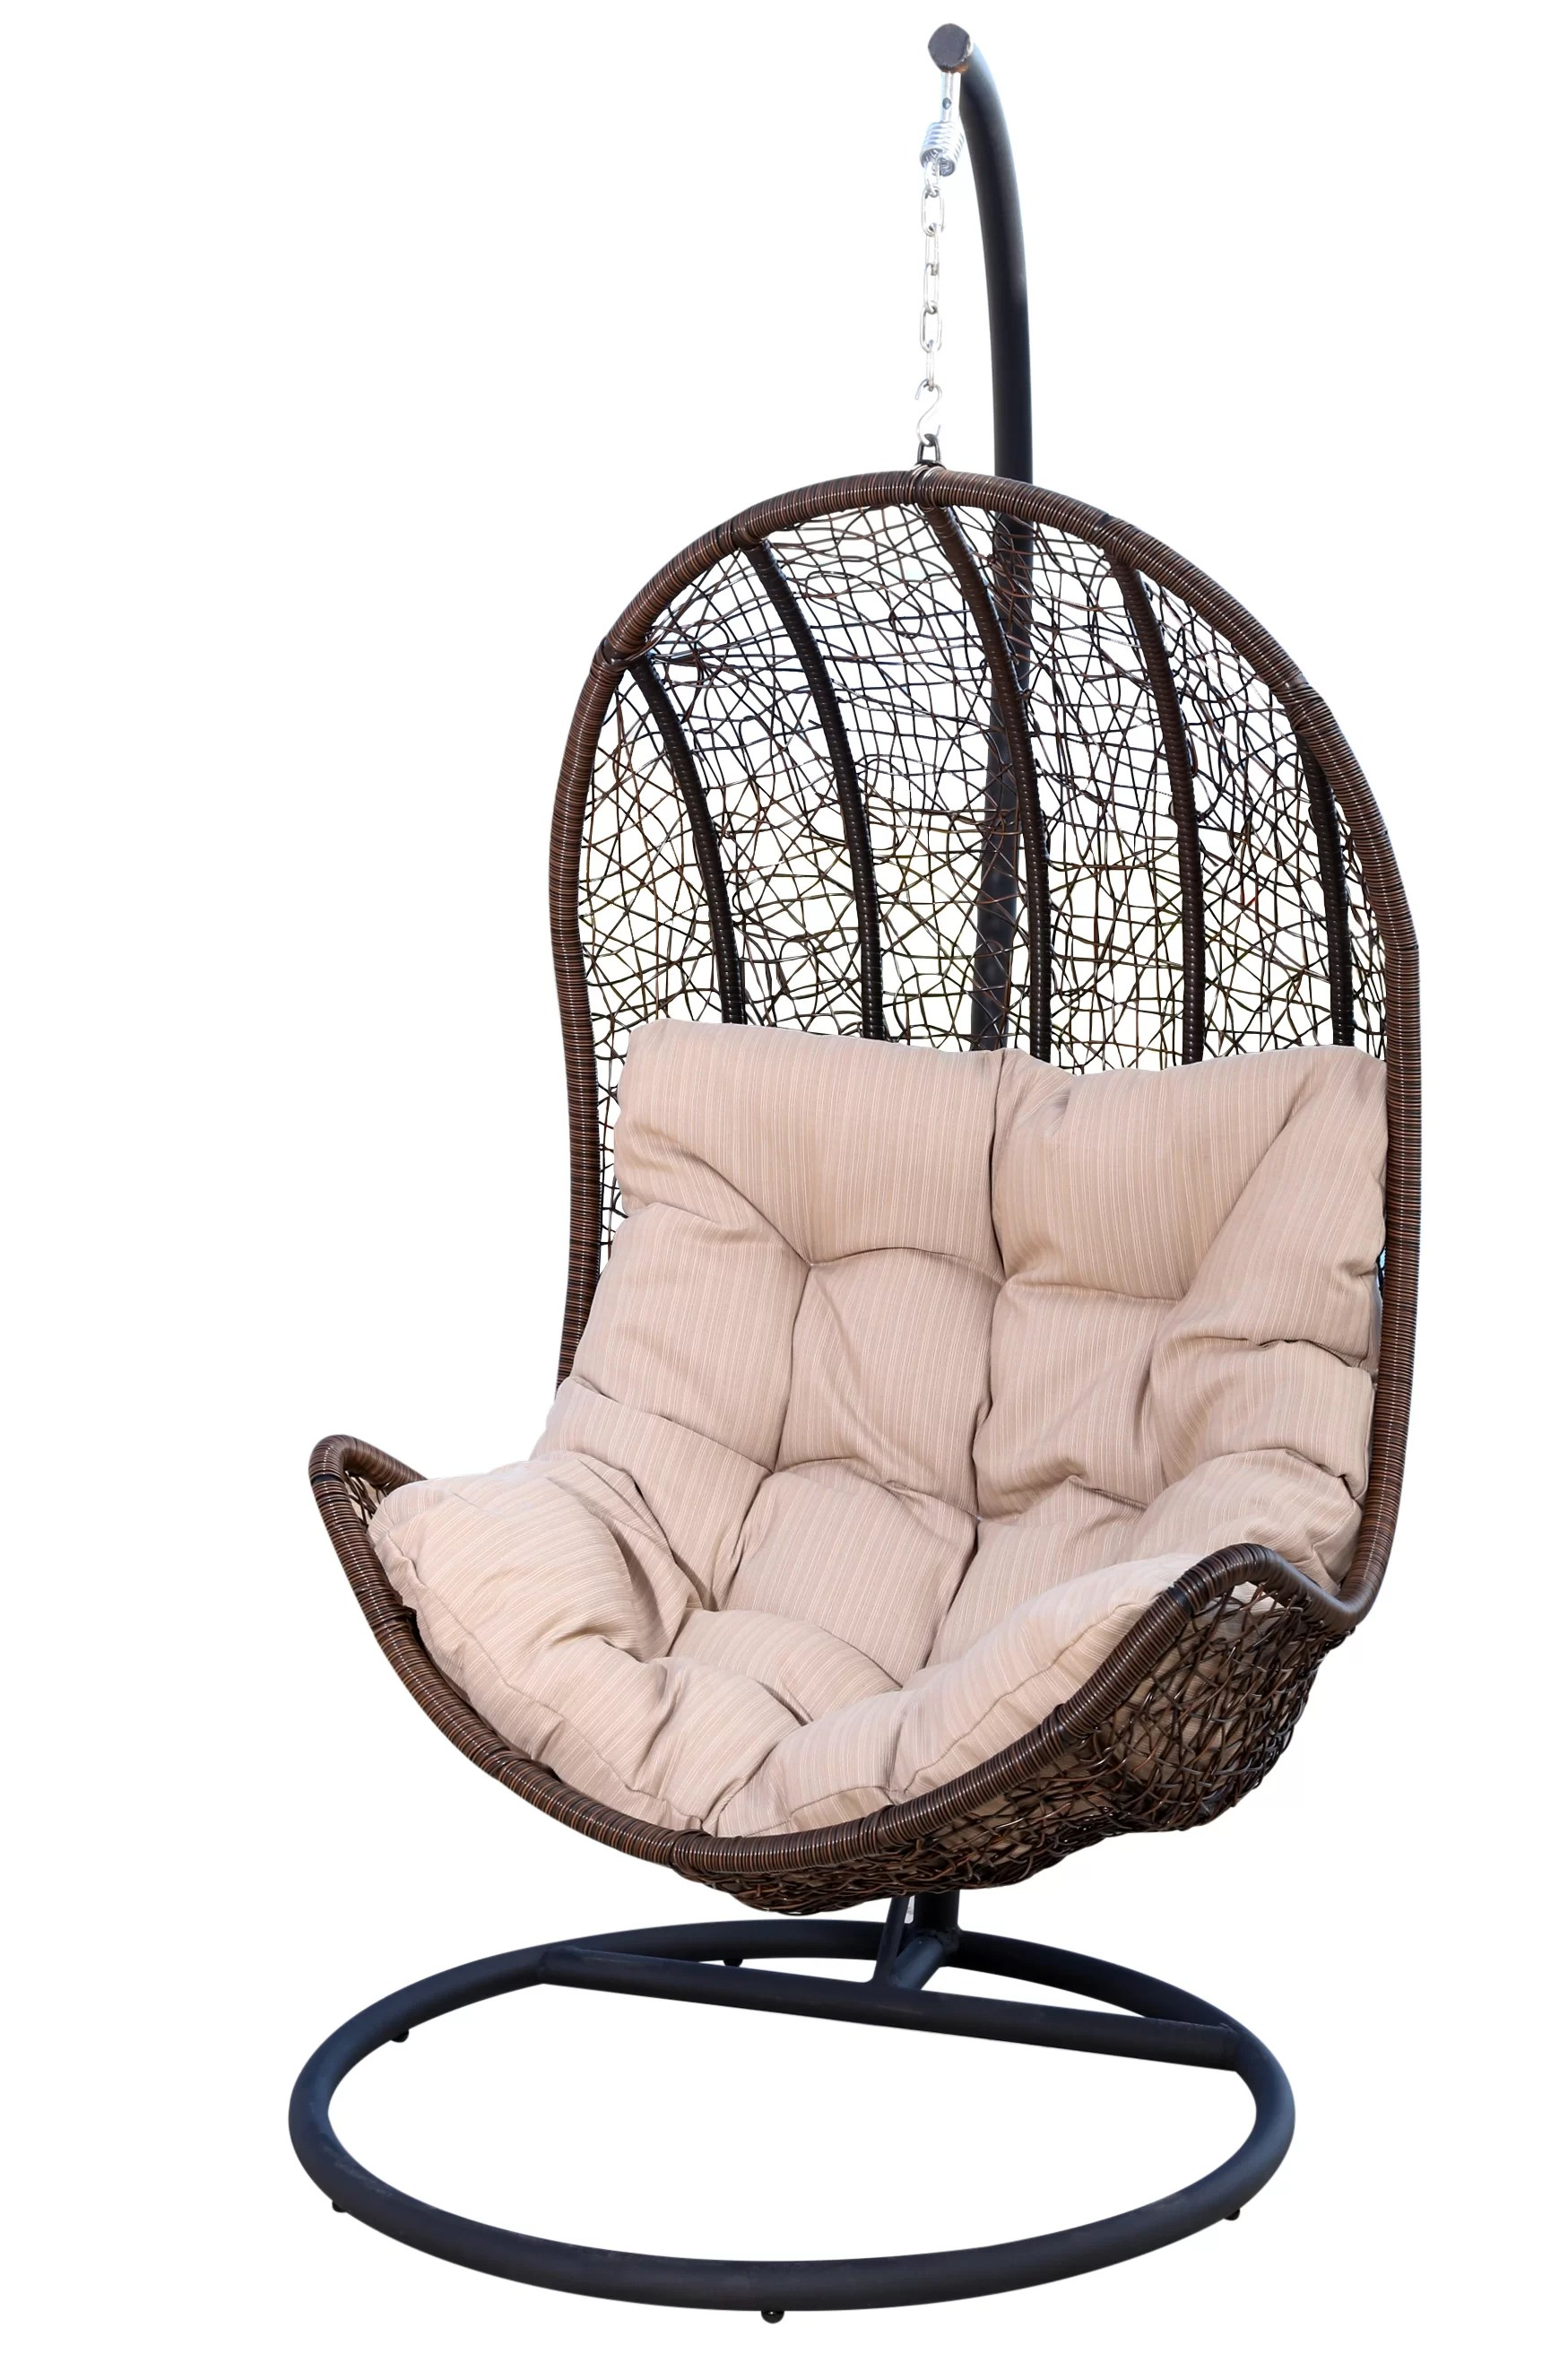 Swinging Chair Ghazali Eggshaped Swing Chair With Stand